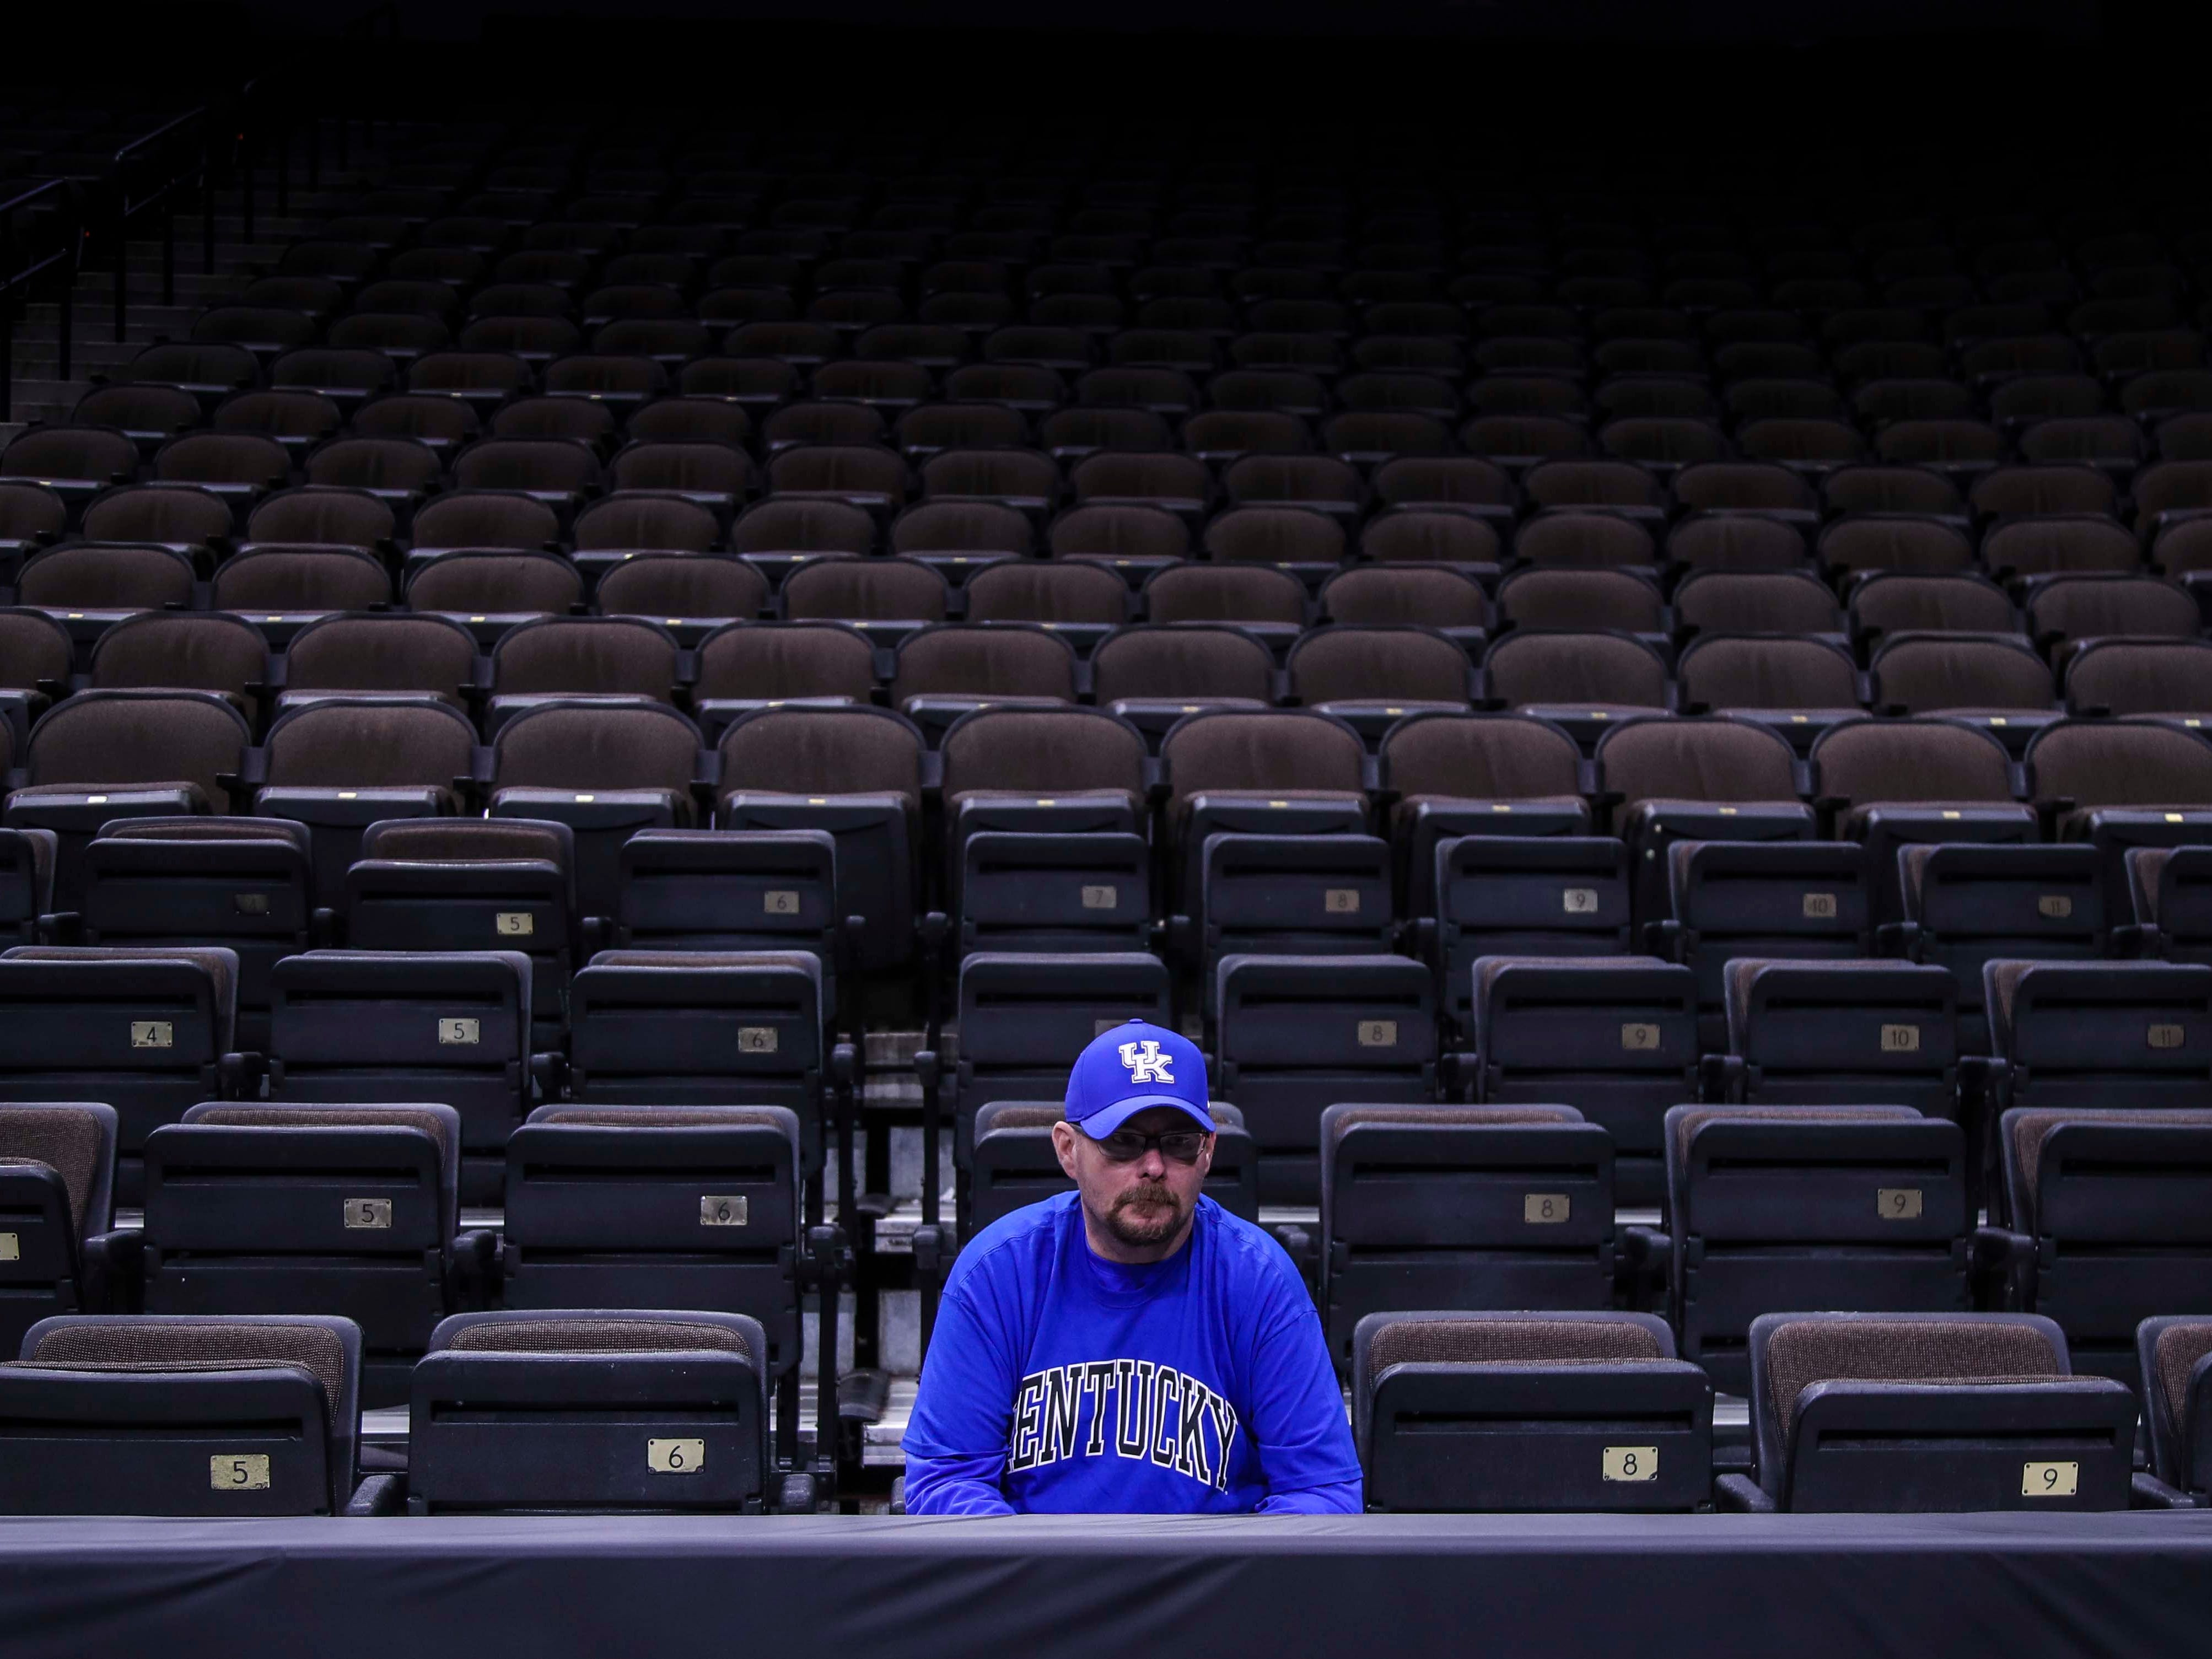 Jacksonville resident David Anderson was the first Kentucky fan in the VyStar Veterans Memorial Arena for open practice Wednesday morning before the start of the Midwest Region of the NCAA tournament. March 20, 2019